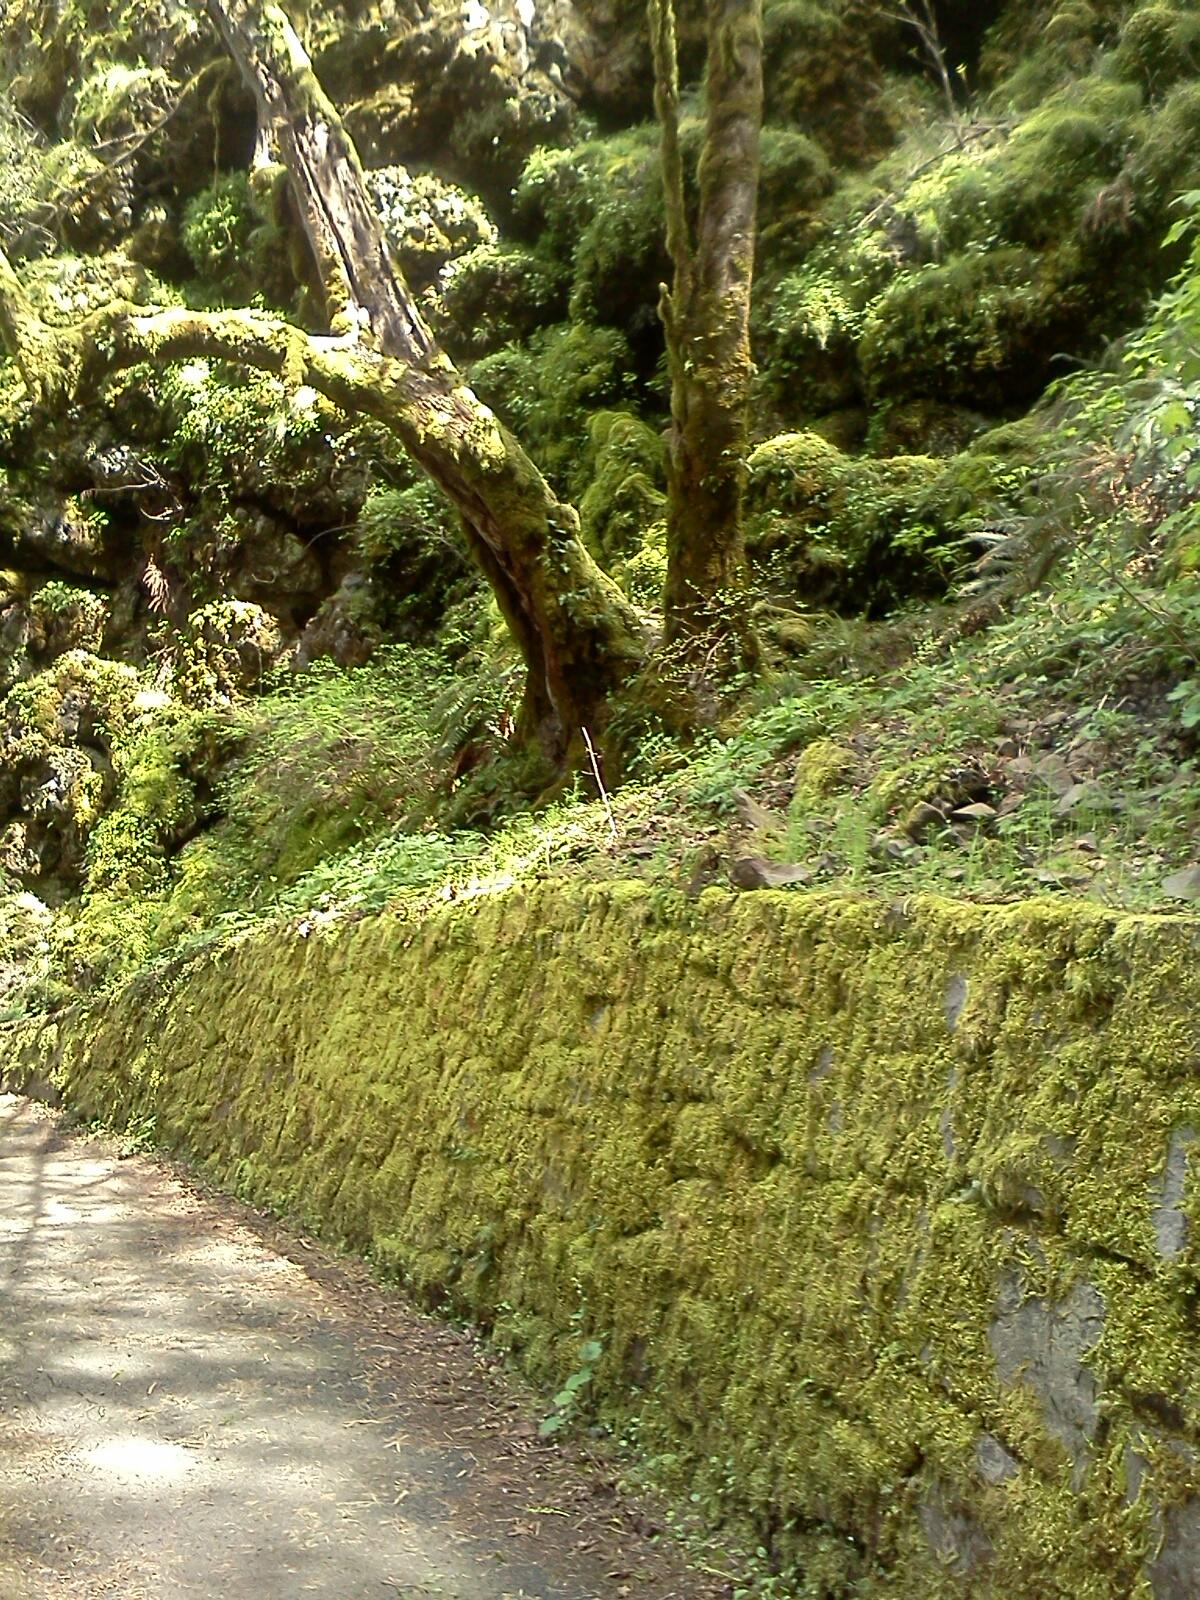 Goddess Canna on Twitter: I love hiking in mossy green